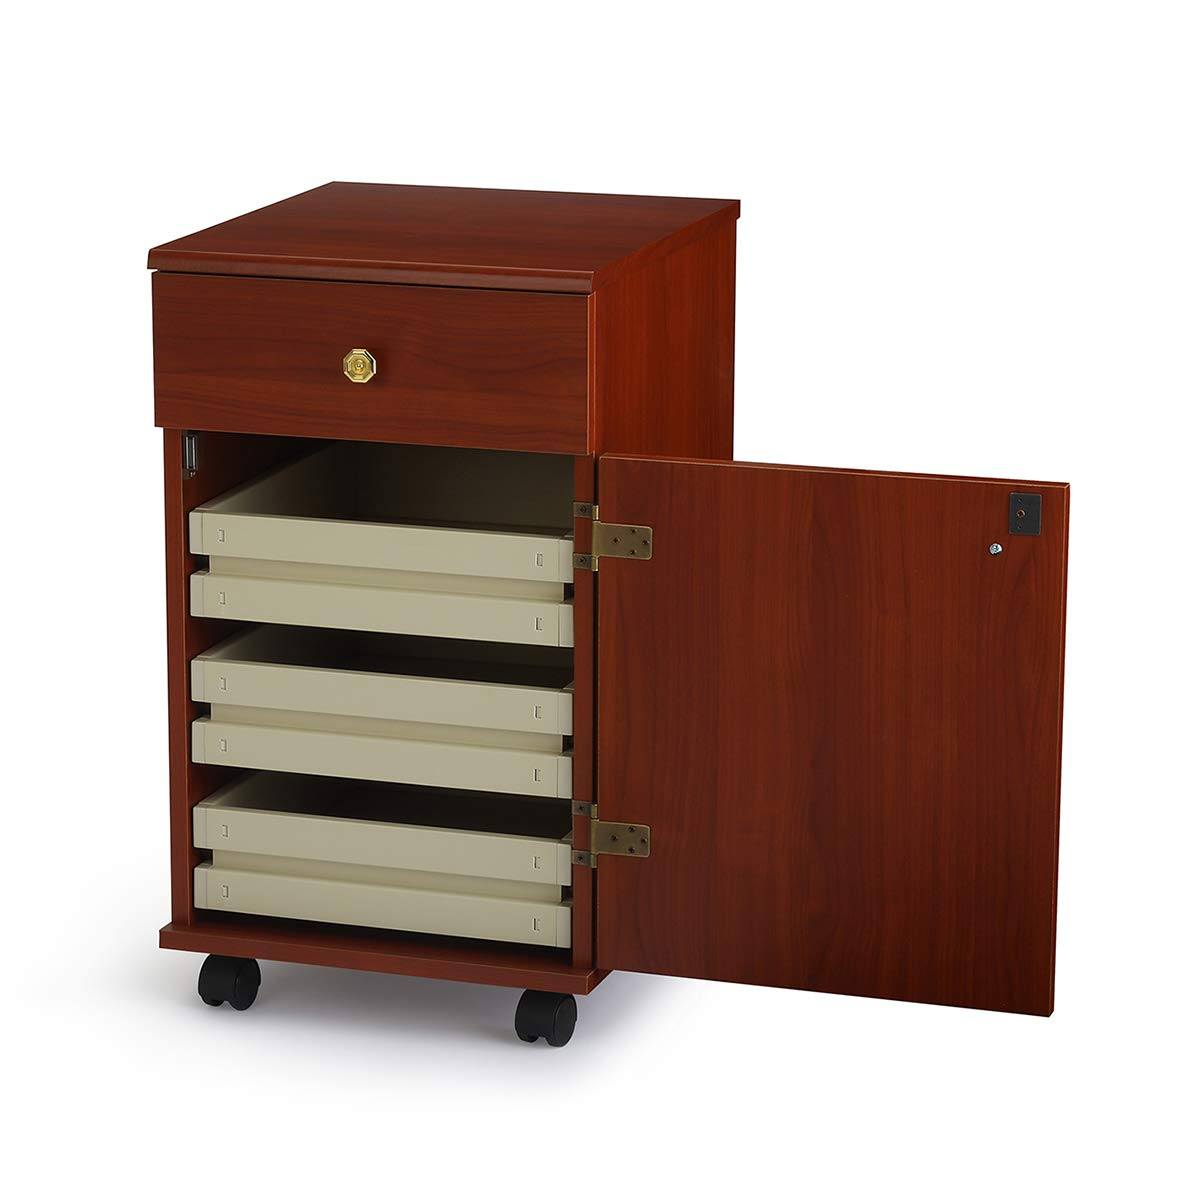 Arrow Sewing Cabinets 802 Suzi, Four Drawer Sewing Storage Cabinent, Cherry